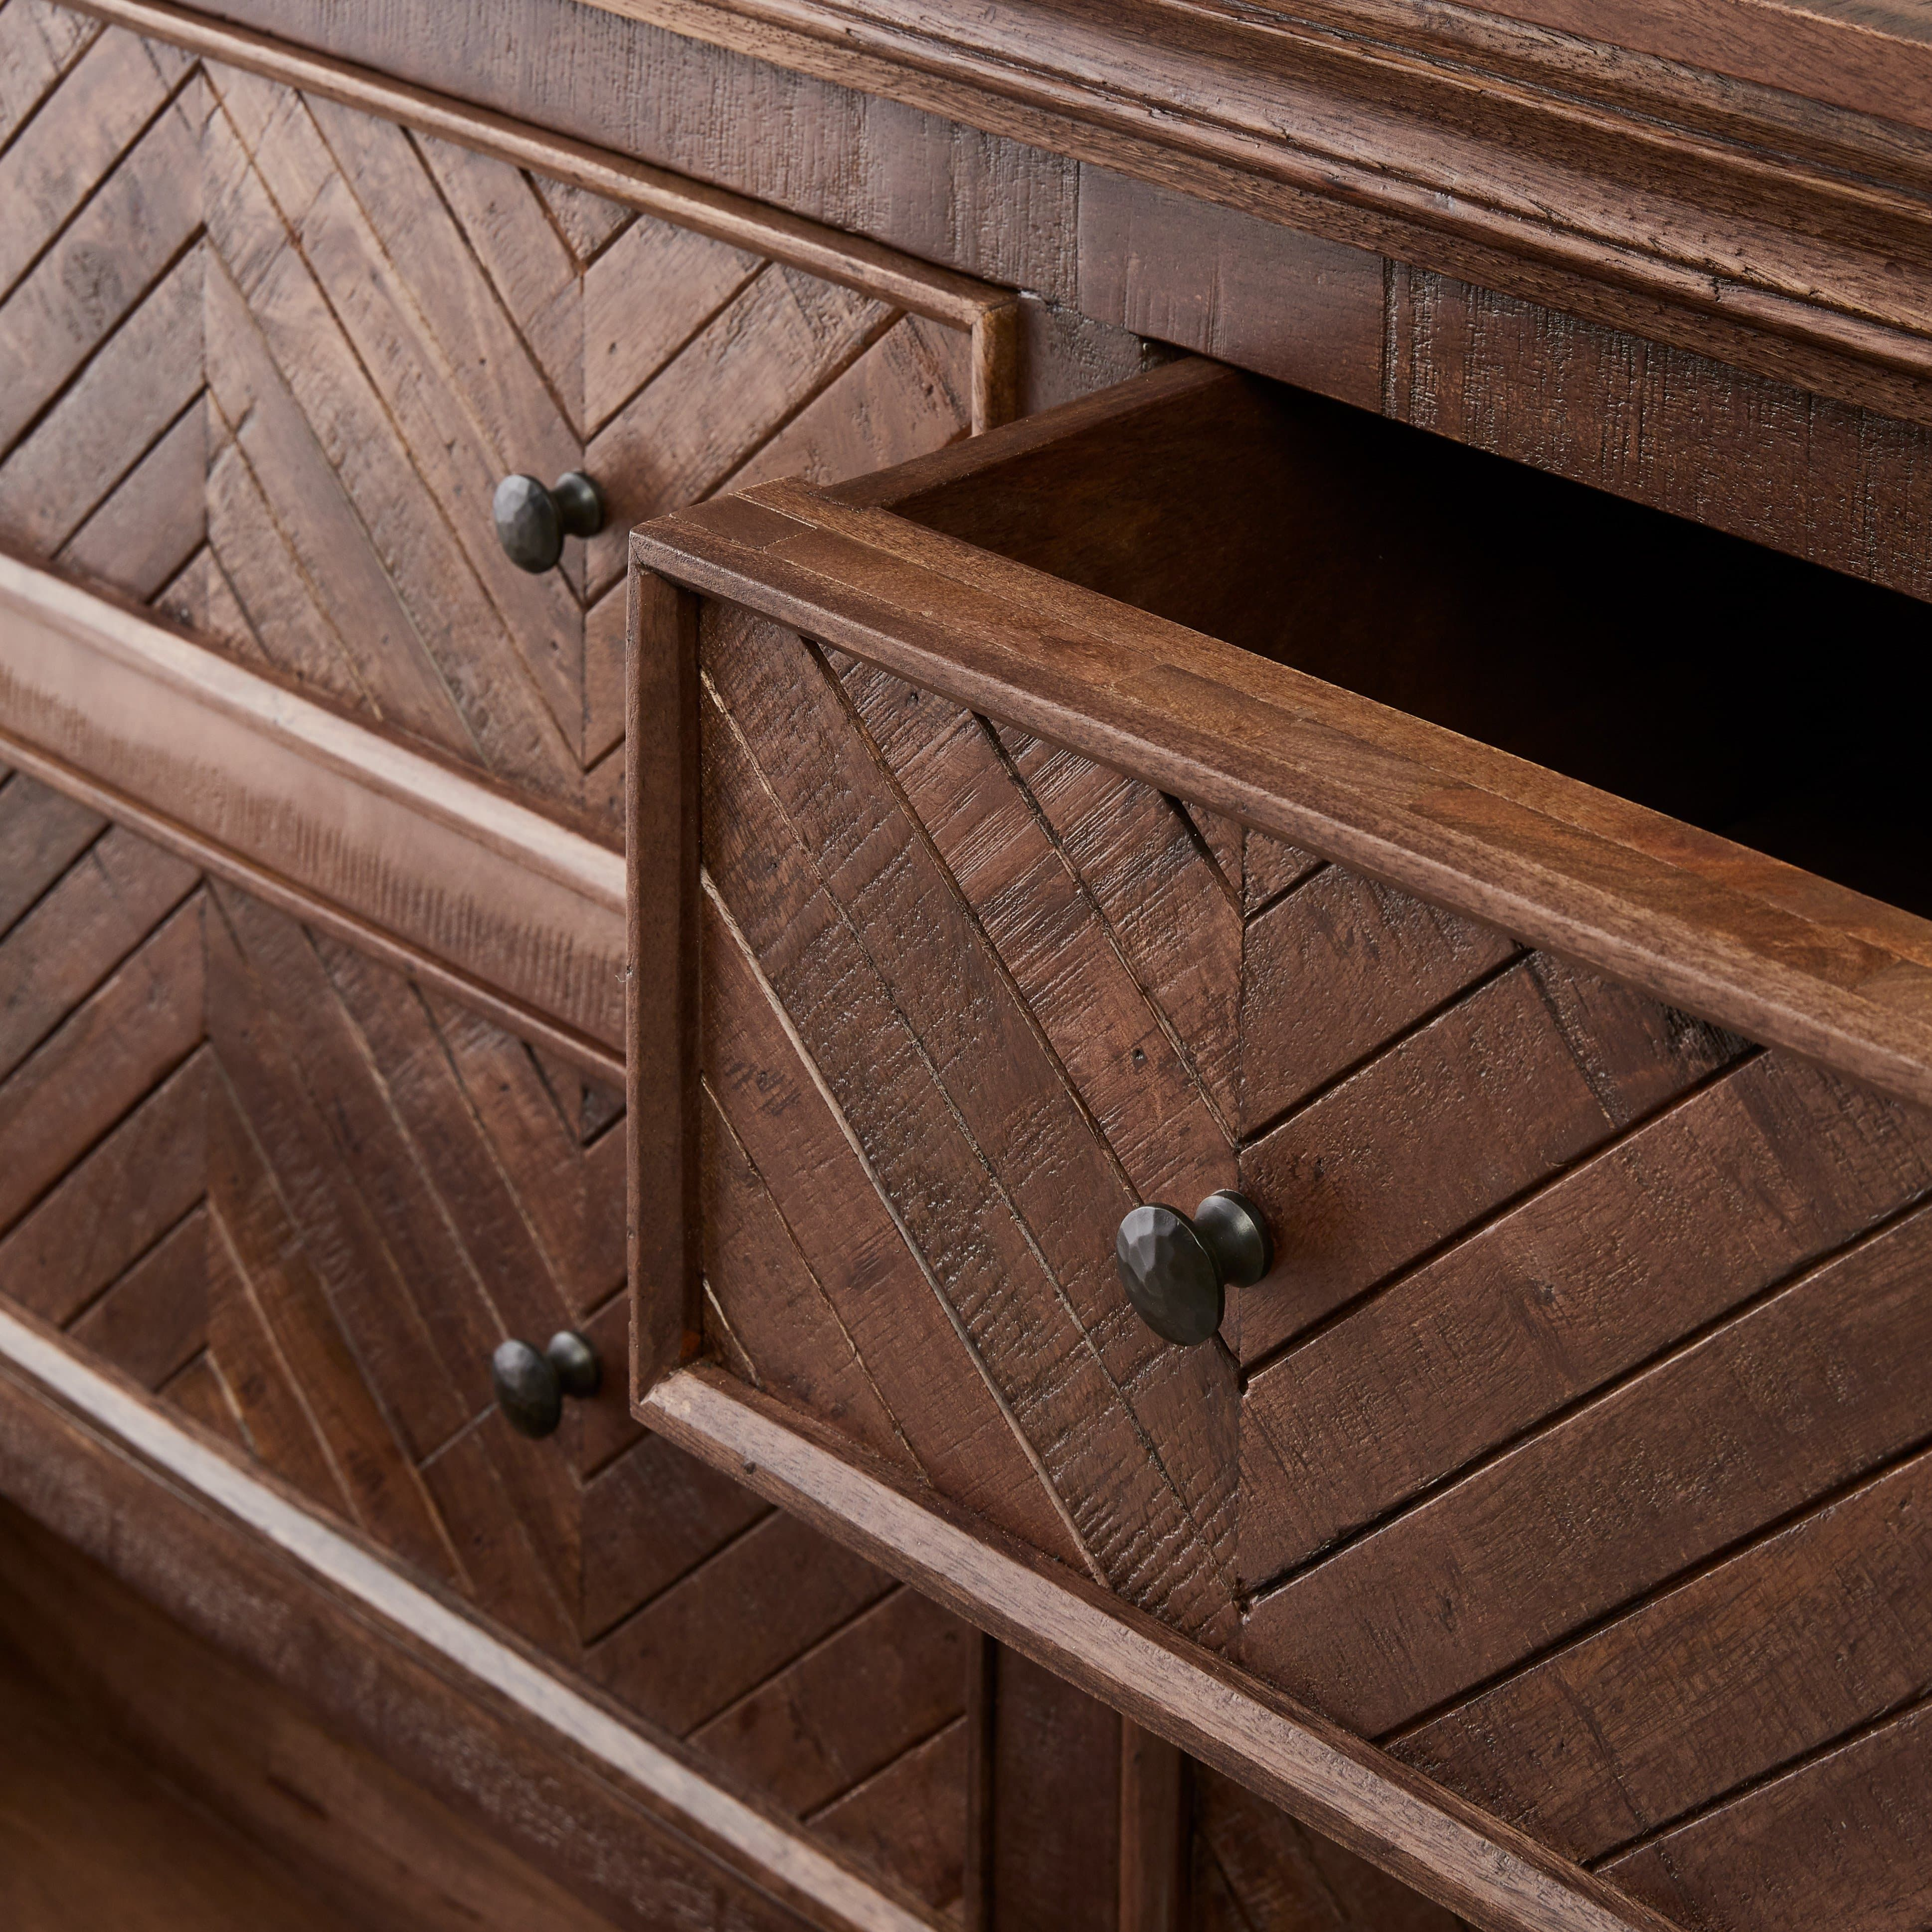 Herringbone design 6 drawer dresser